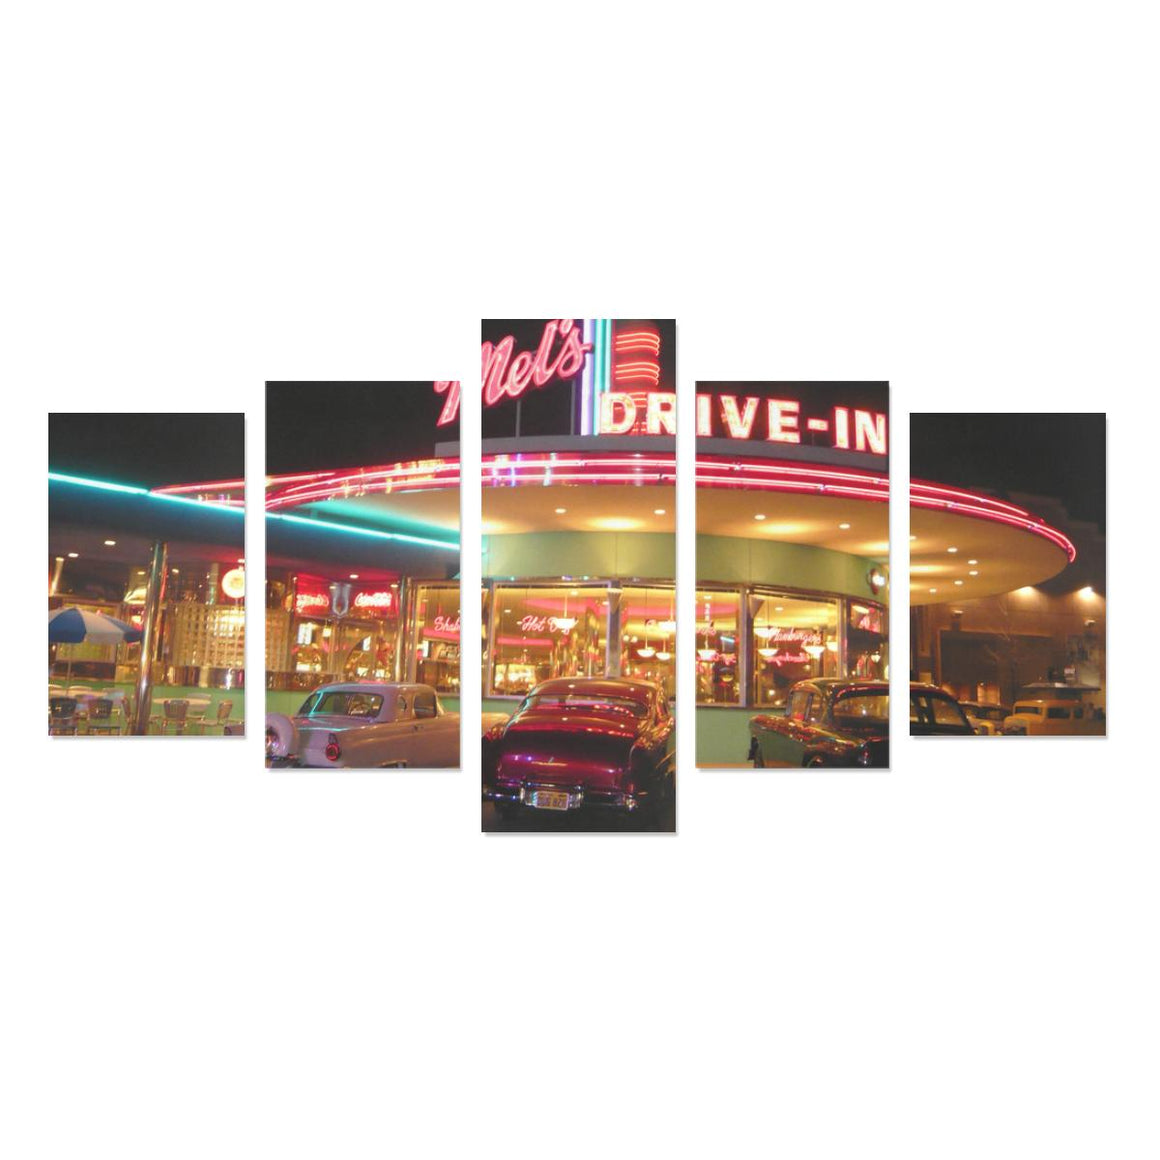 Mels Drive In Canvas Print Sets (No Frame)